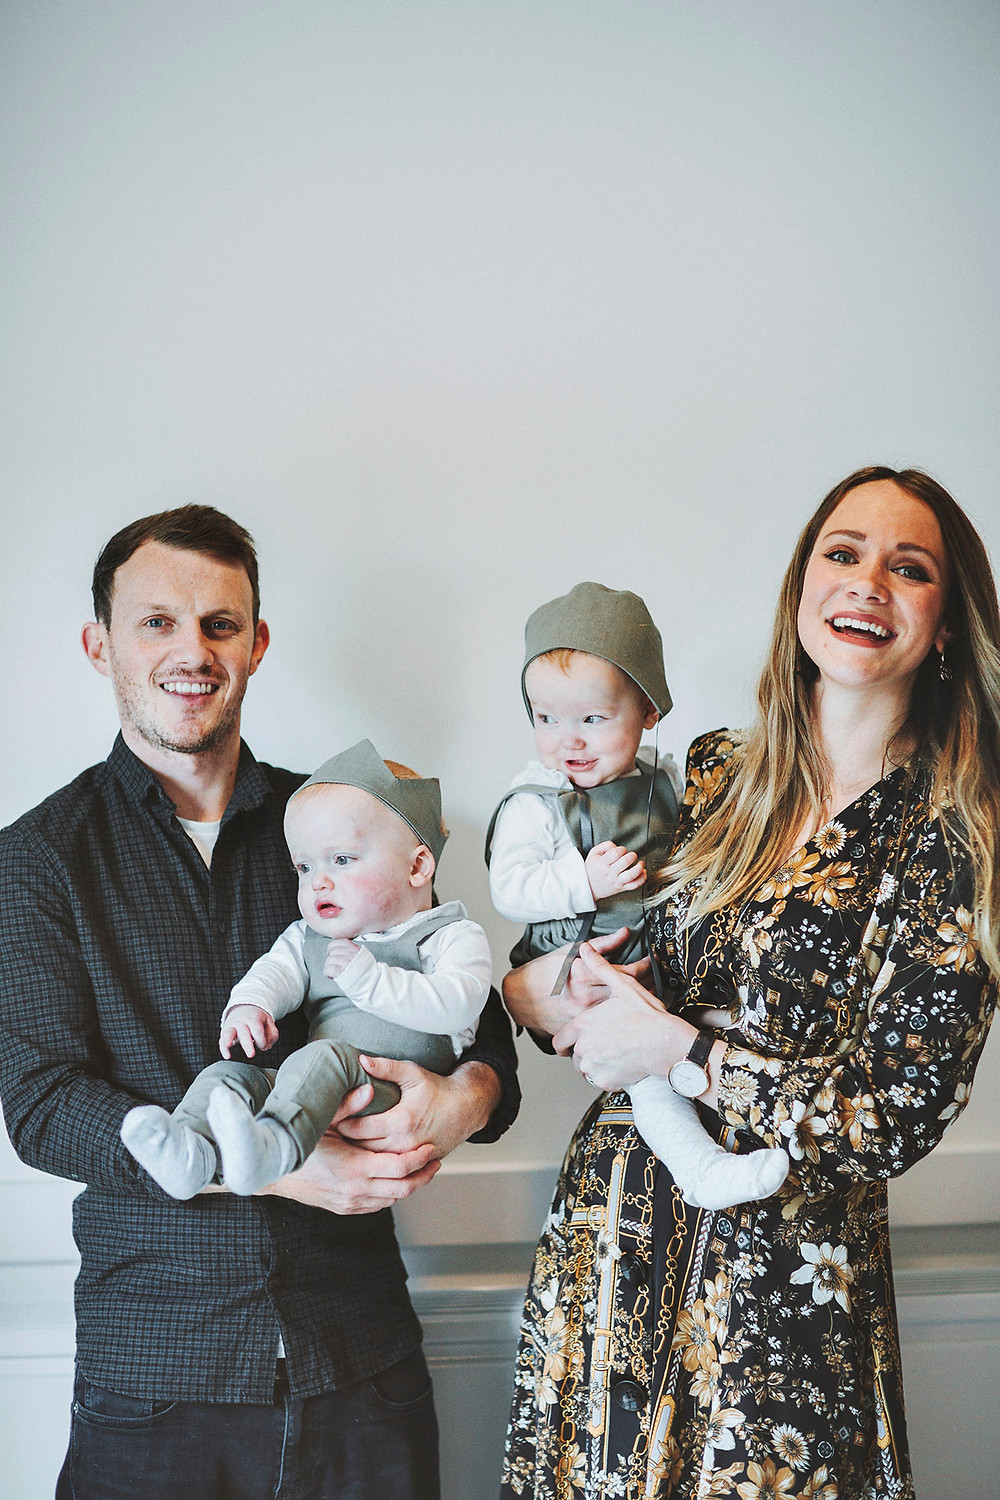 The Garden Eatery Co-founder Kate Mosley & Family